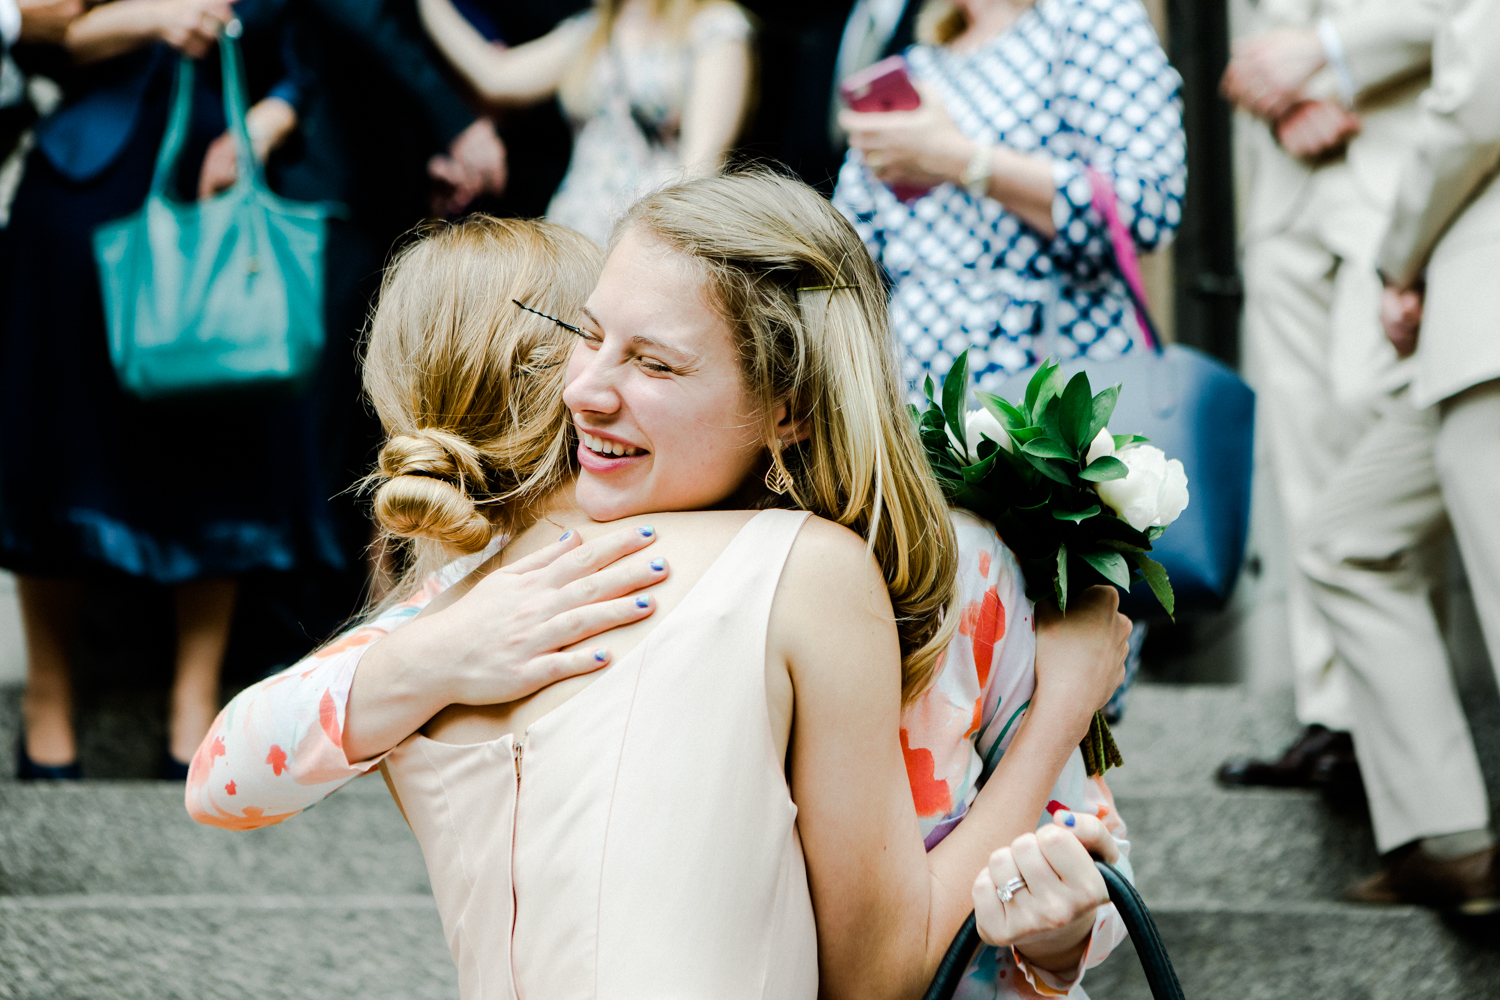 lissie_loomis_photo_nyc_brooklyn_wedding_engagement_photographer_photography-42.JPG